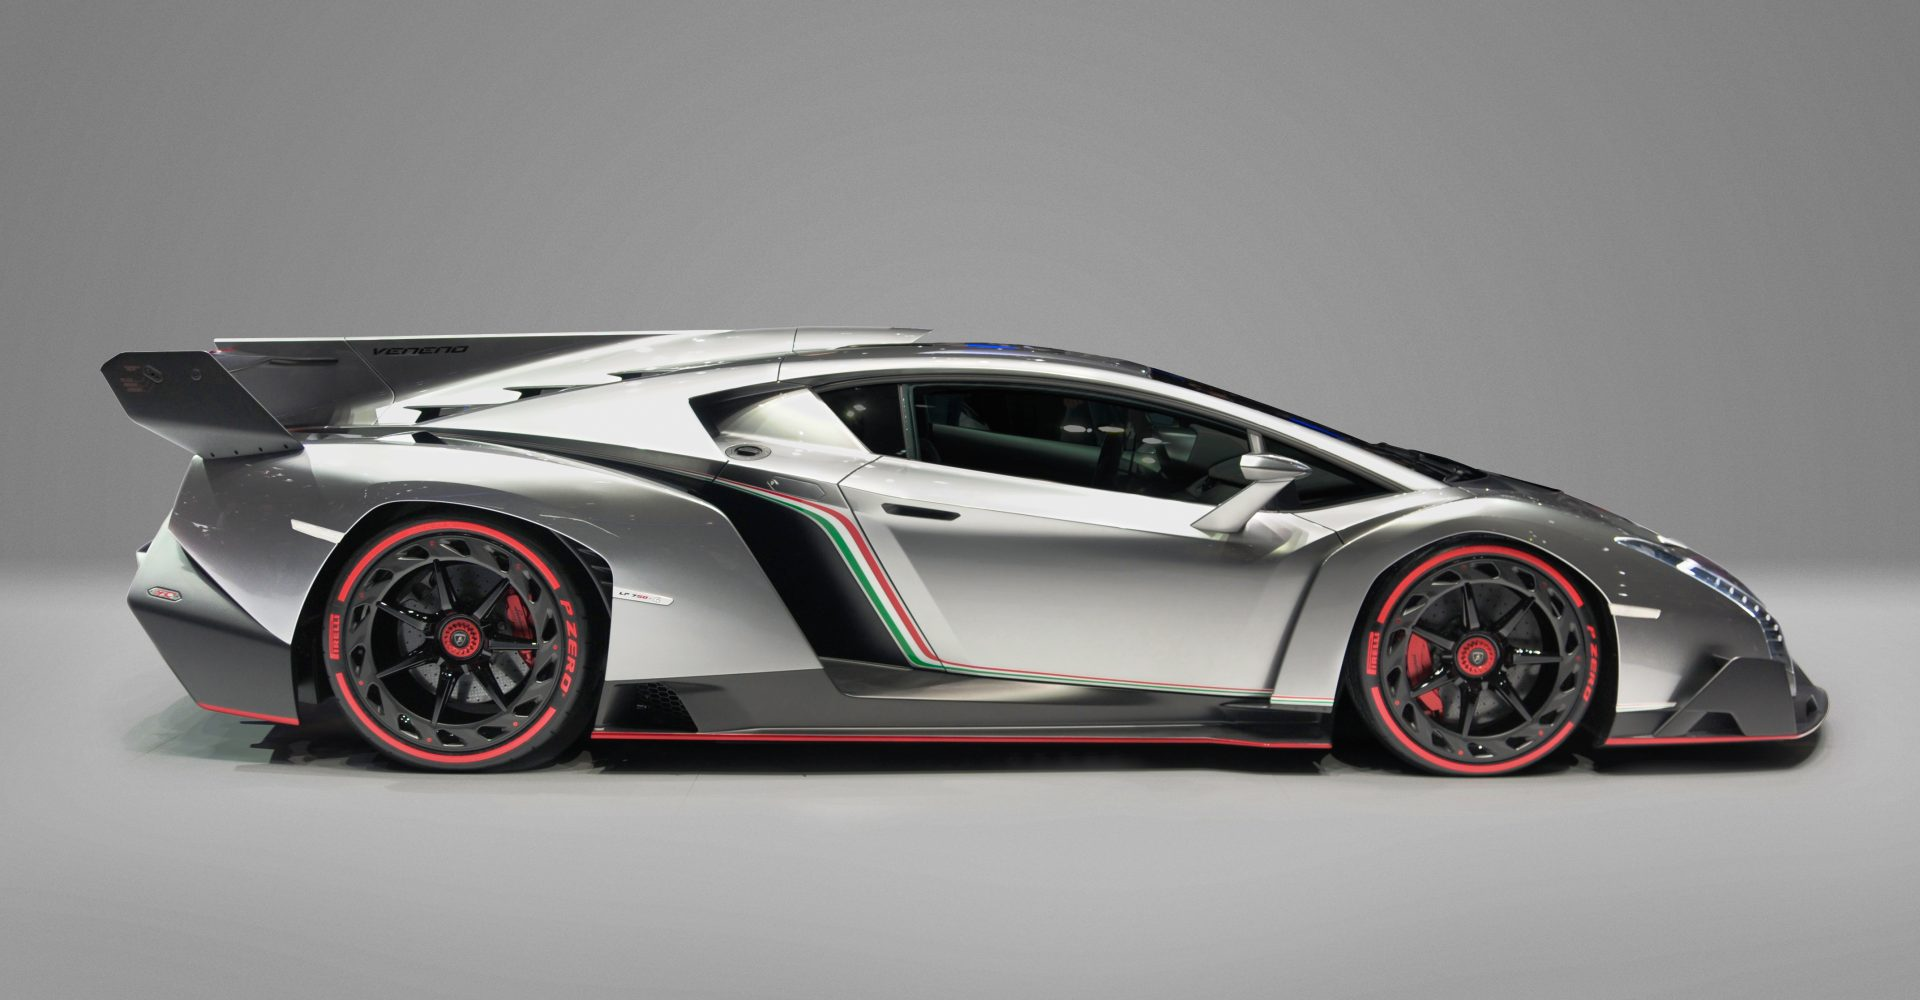 Got a spare £7.4m? You could buy this rare Lamborghini Veneno ... Lamborghini Veneno Where To Buy on lamborghini huracan, lamborghini diablo, lamborghini aventador, lamborghini motorcycle, lamborghini dallas, lamborghini egoista, lamborghini truck, lamborghini limo, lamborghini miura, lamborghini superleggera, lamborghini mercy, lamborghini on fire, lamborghini roadster, lamborghini reventon, lamborghini ankonian, lamborghini estoque, lamborghini urraco, lamborghini batmobile, lamborghini murcielago, lamborghini countach,